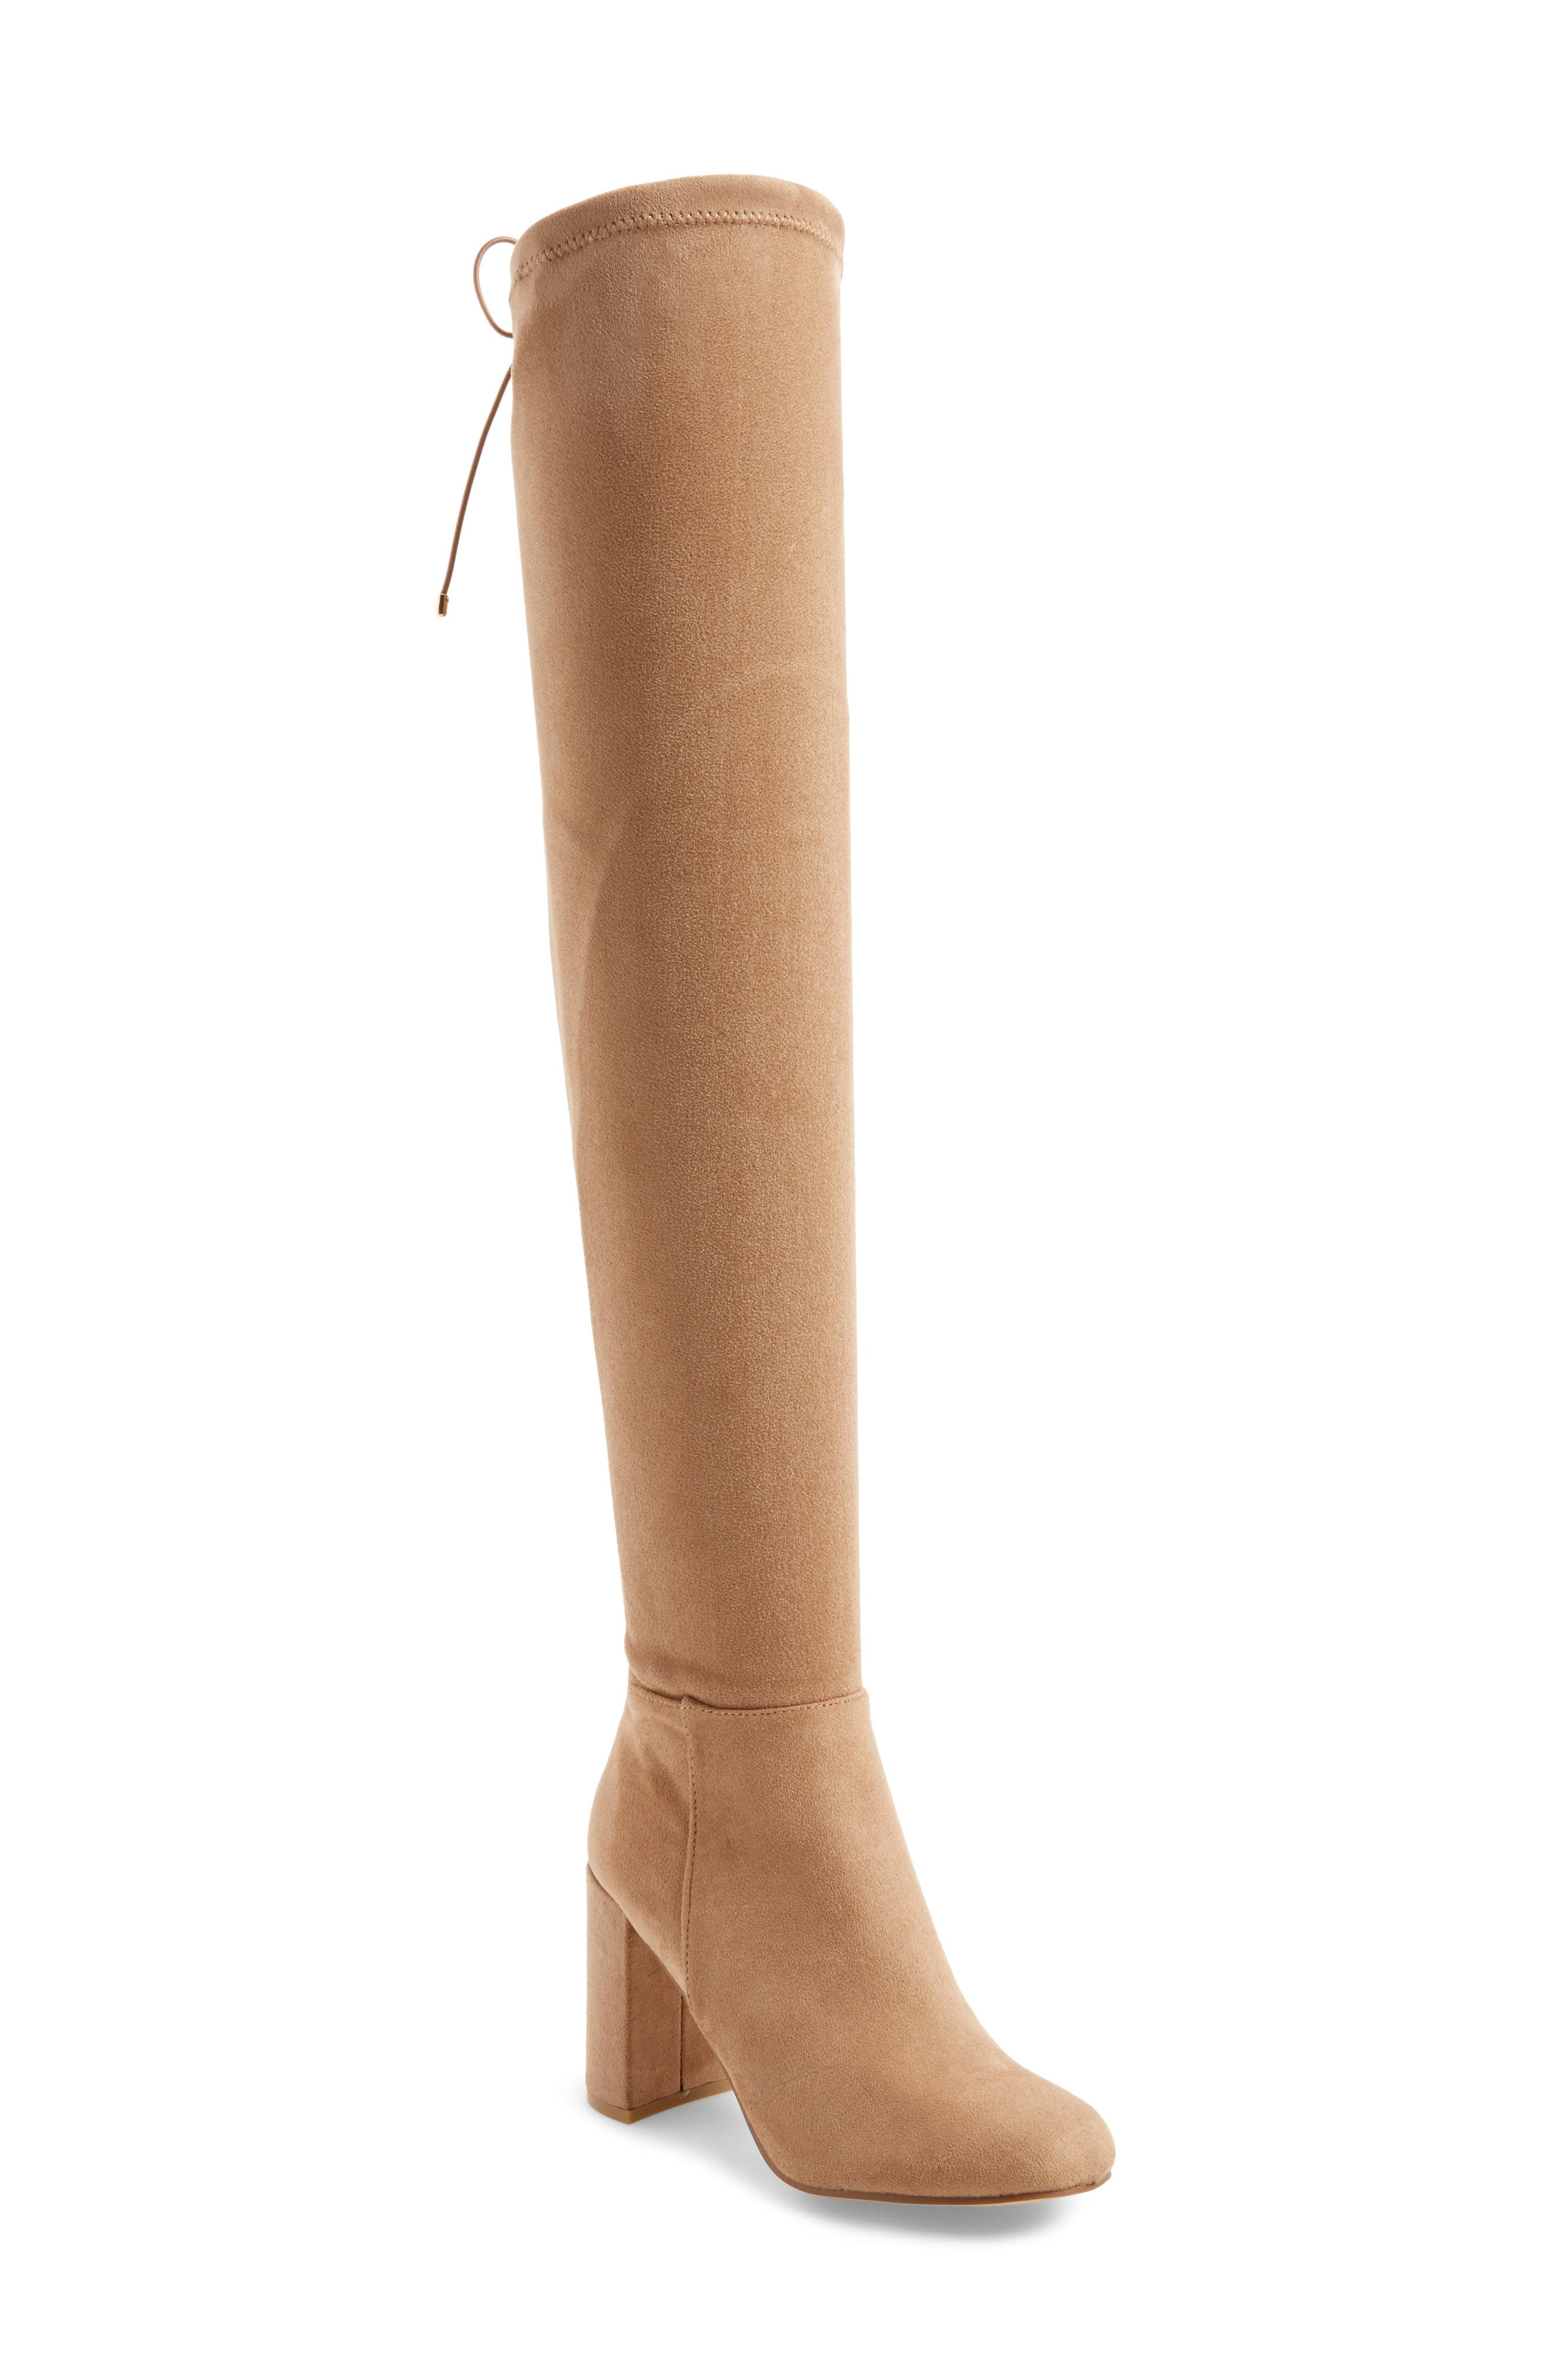 Krush Over the Knee Boot,                             Main thumbnail 1, color,                             Mink Suede